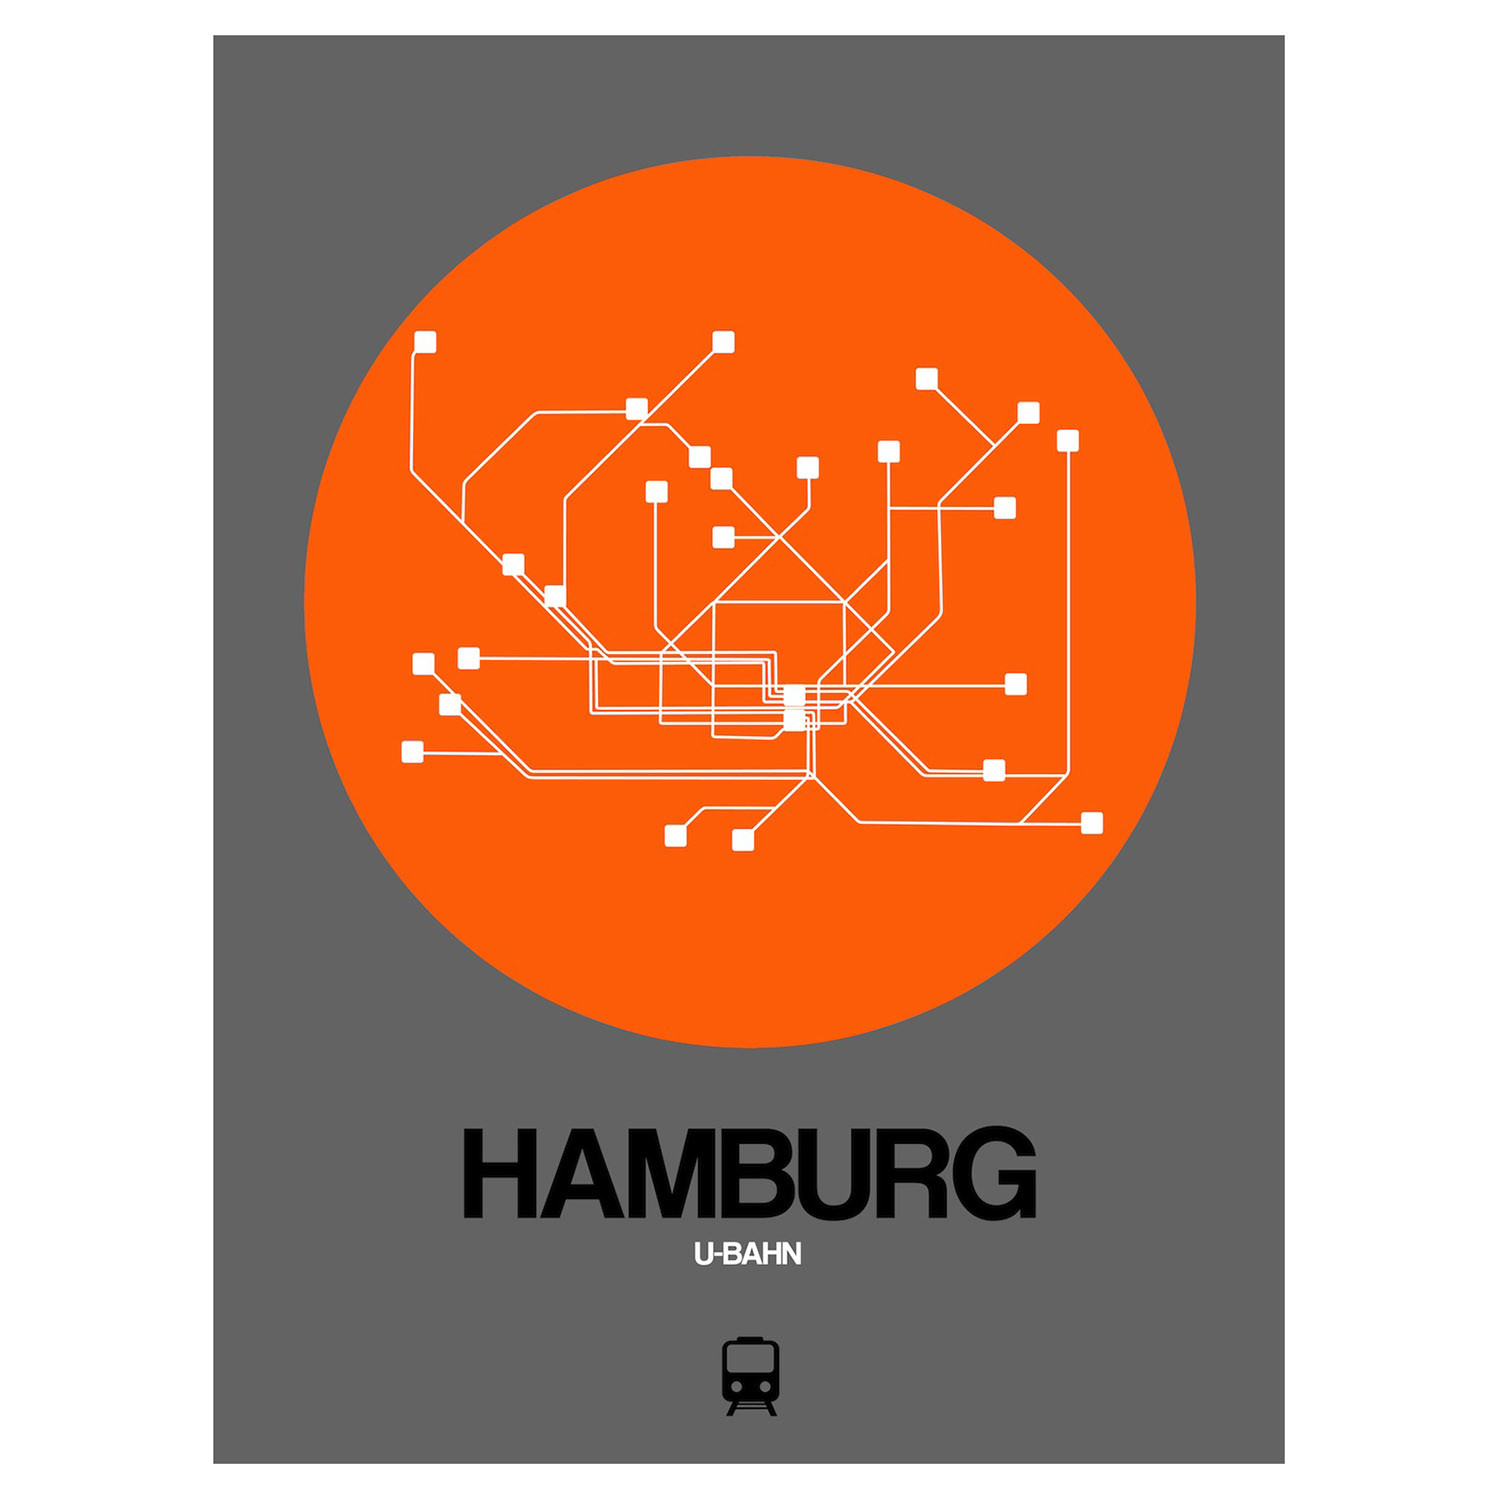 Hamburg Subway Map.Hamburg Subway Map Black Subway City Maps Touch Of Modern